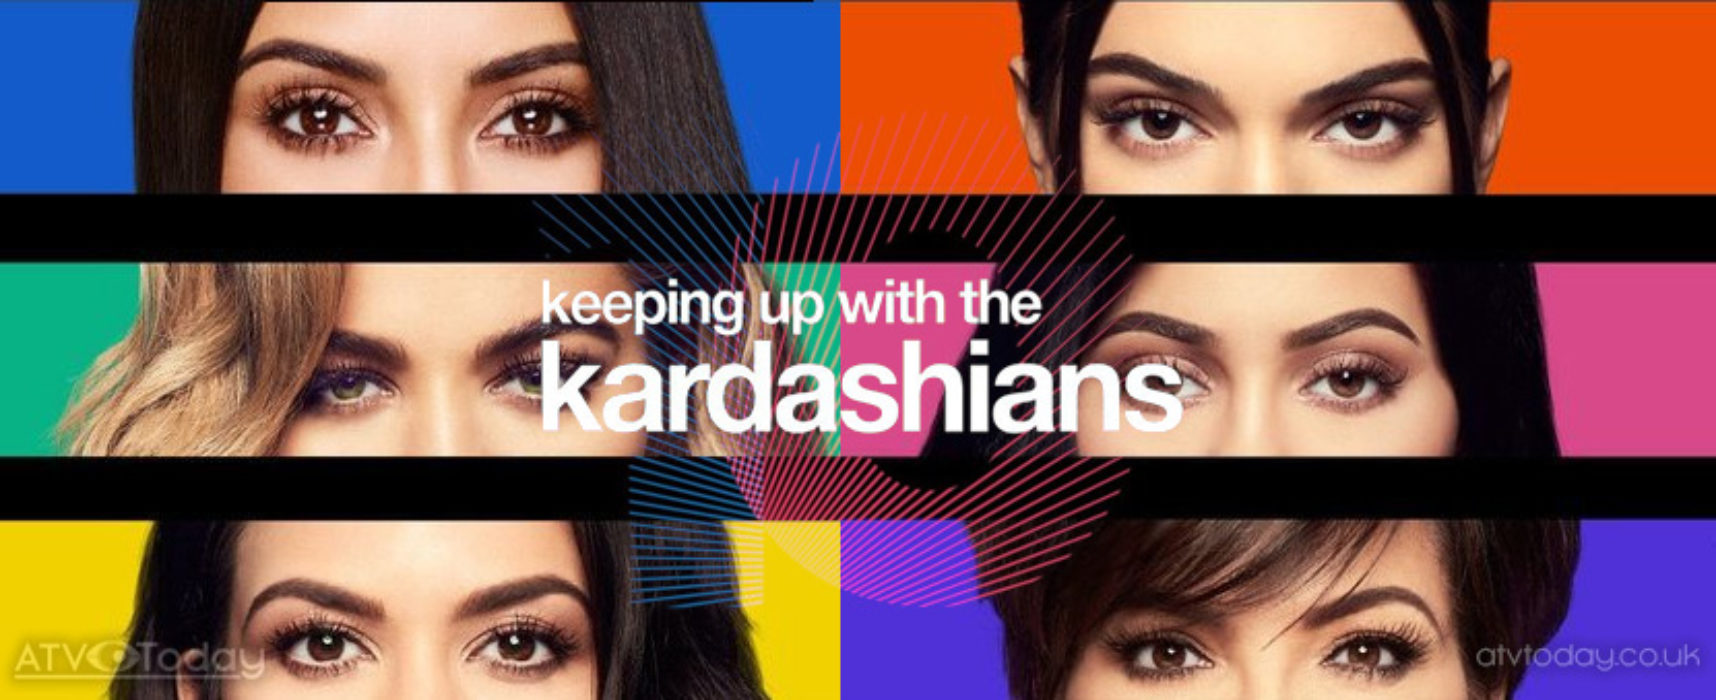 London's Saatchi Gallery to host '10 Years of Keeping Up With The Kardashians' celebration